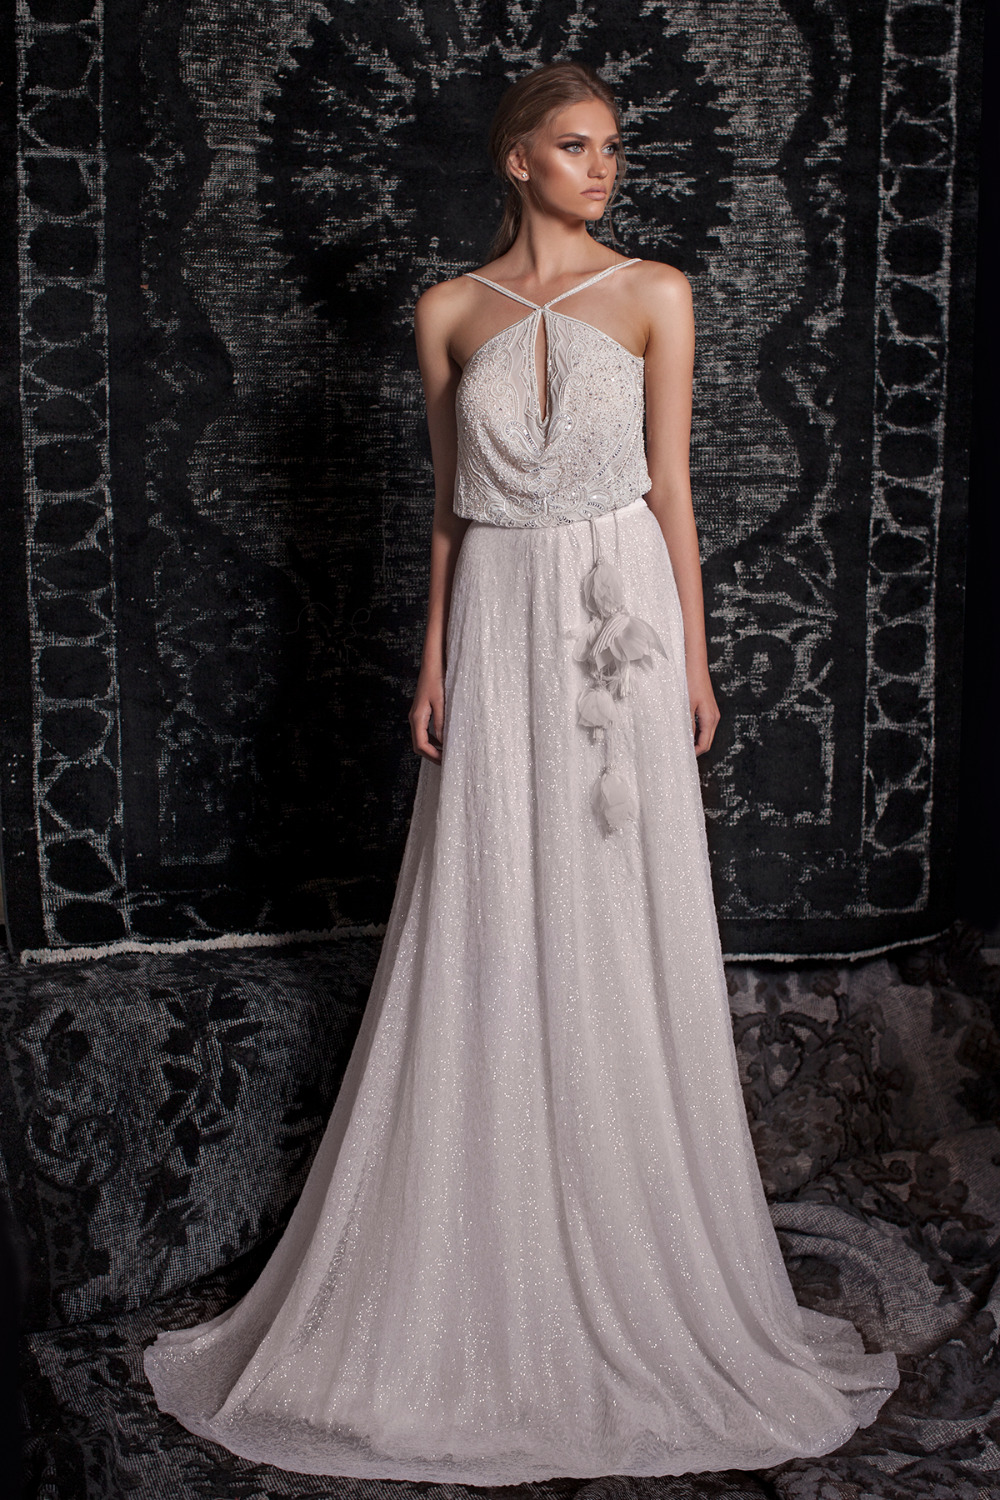 Persy 2017 Bridal Collection